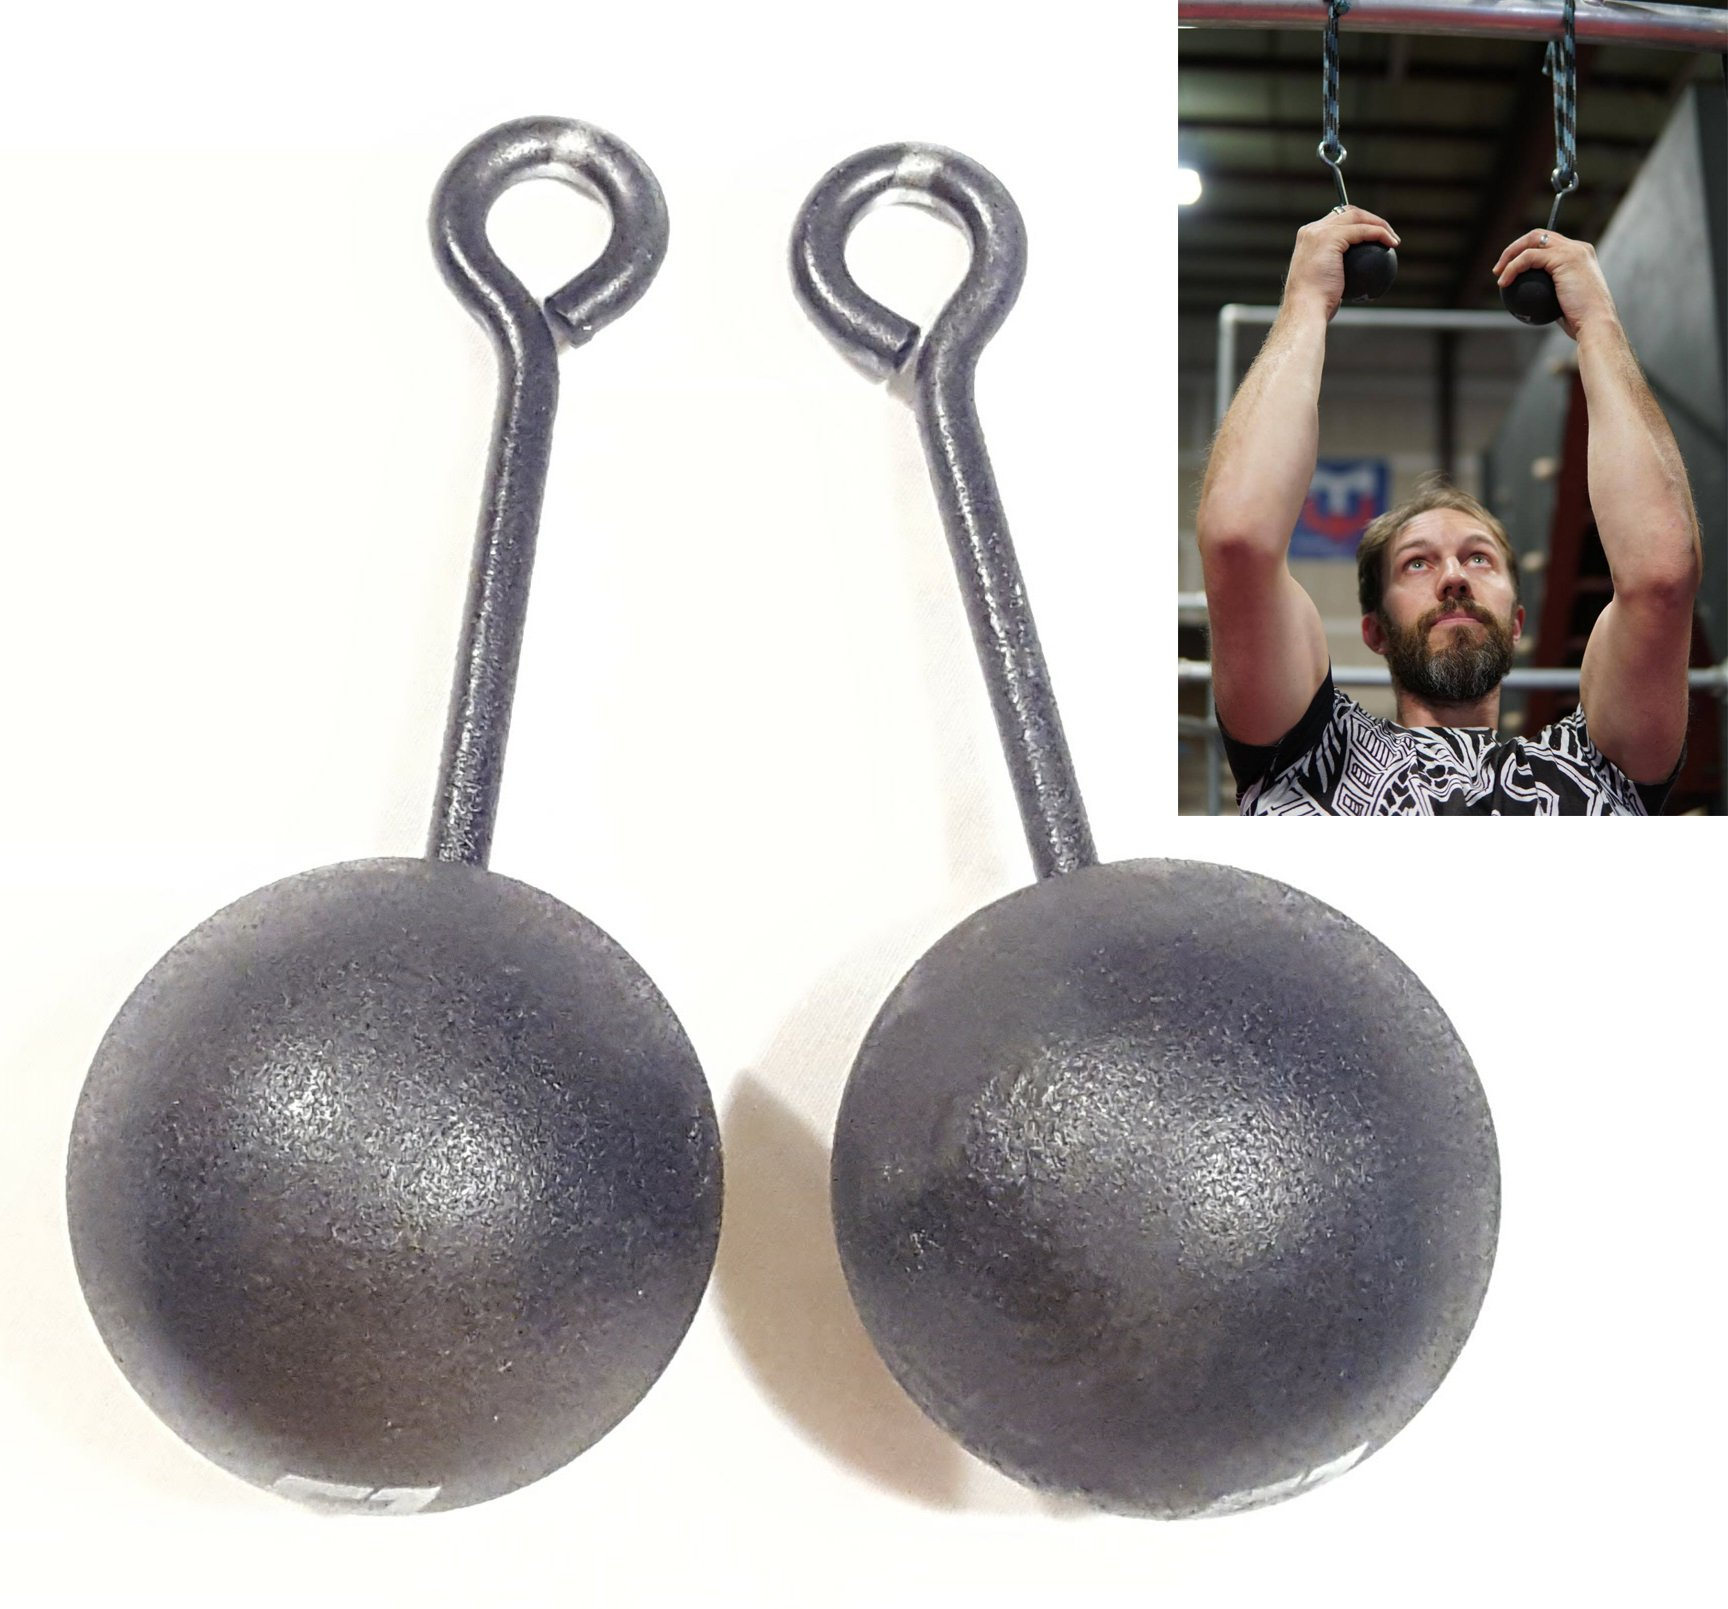 Grip Strength Training, 3-inch Hardwood Pull-Up Cannonballs - Ninja Warrior Climbing Holds & Crossfit Training, Set of 2